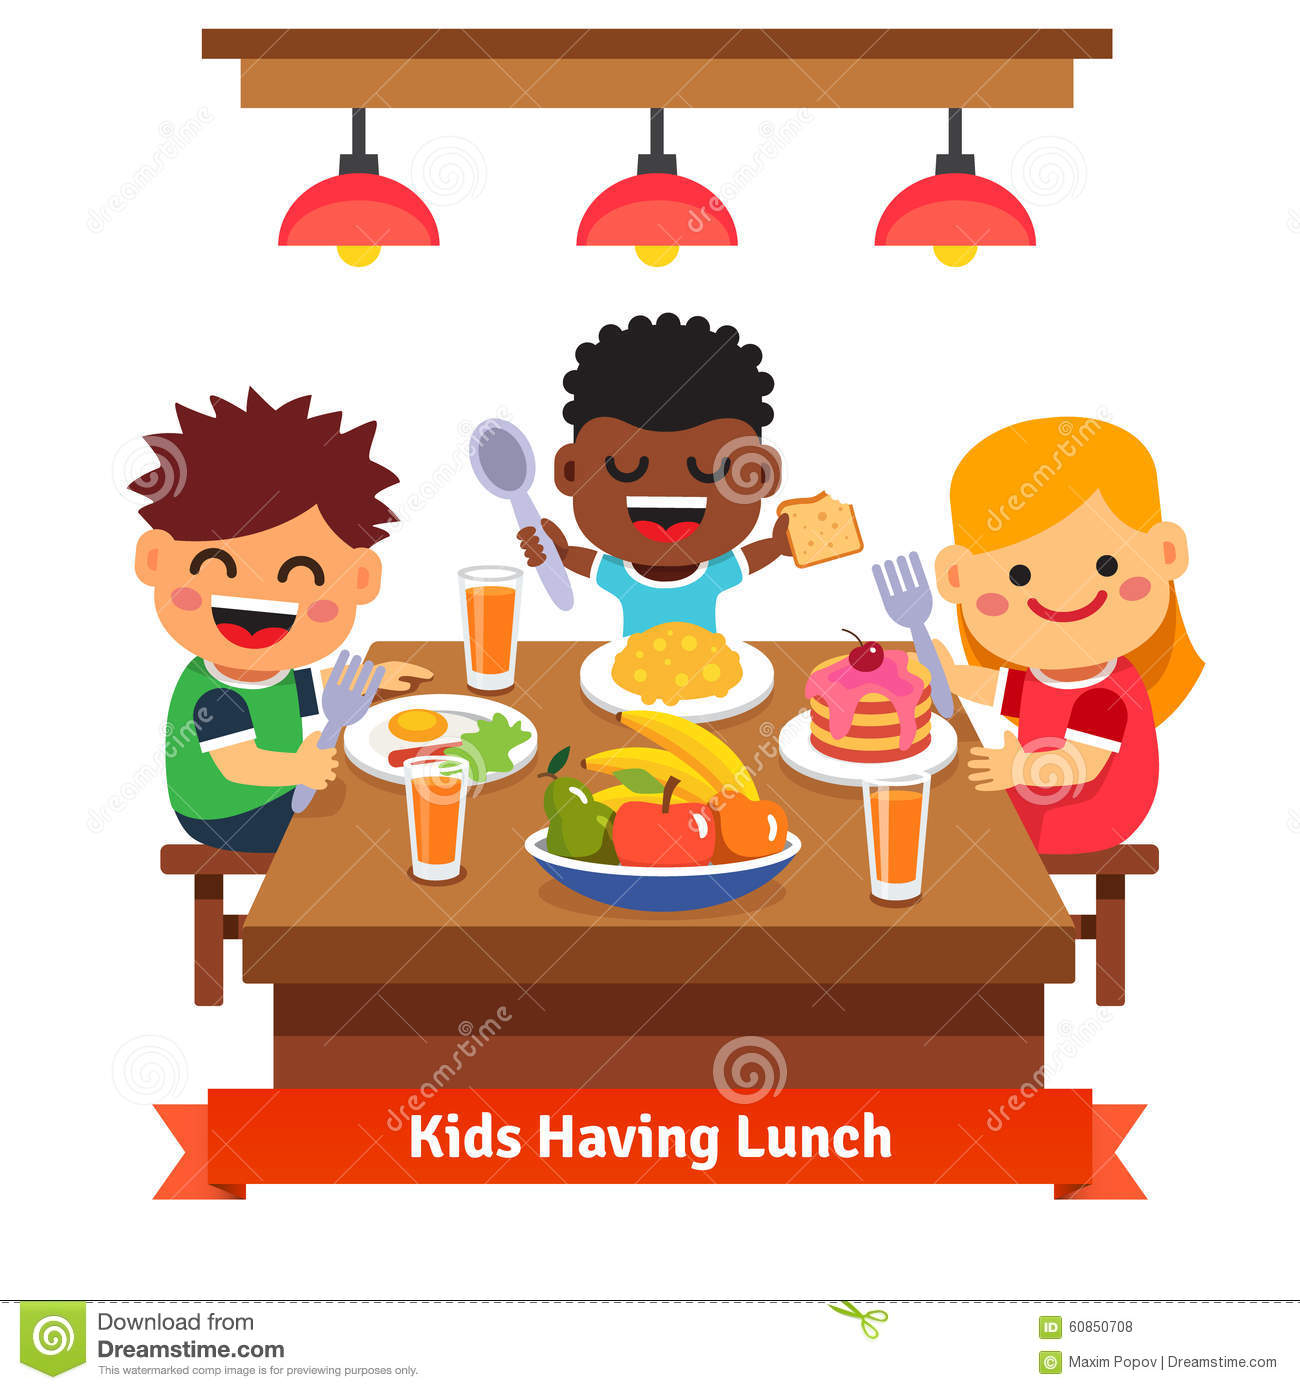 Children Having Dinner At The Kindergarten Of Home Stock  : children having dinner kindergarten home kids eating smiling flat style cartoon vector illustration white 60850708 from dreamstime.com size 1300 x 1390 jpeg 146kB